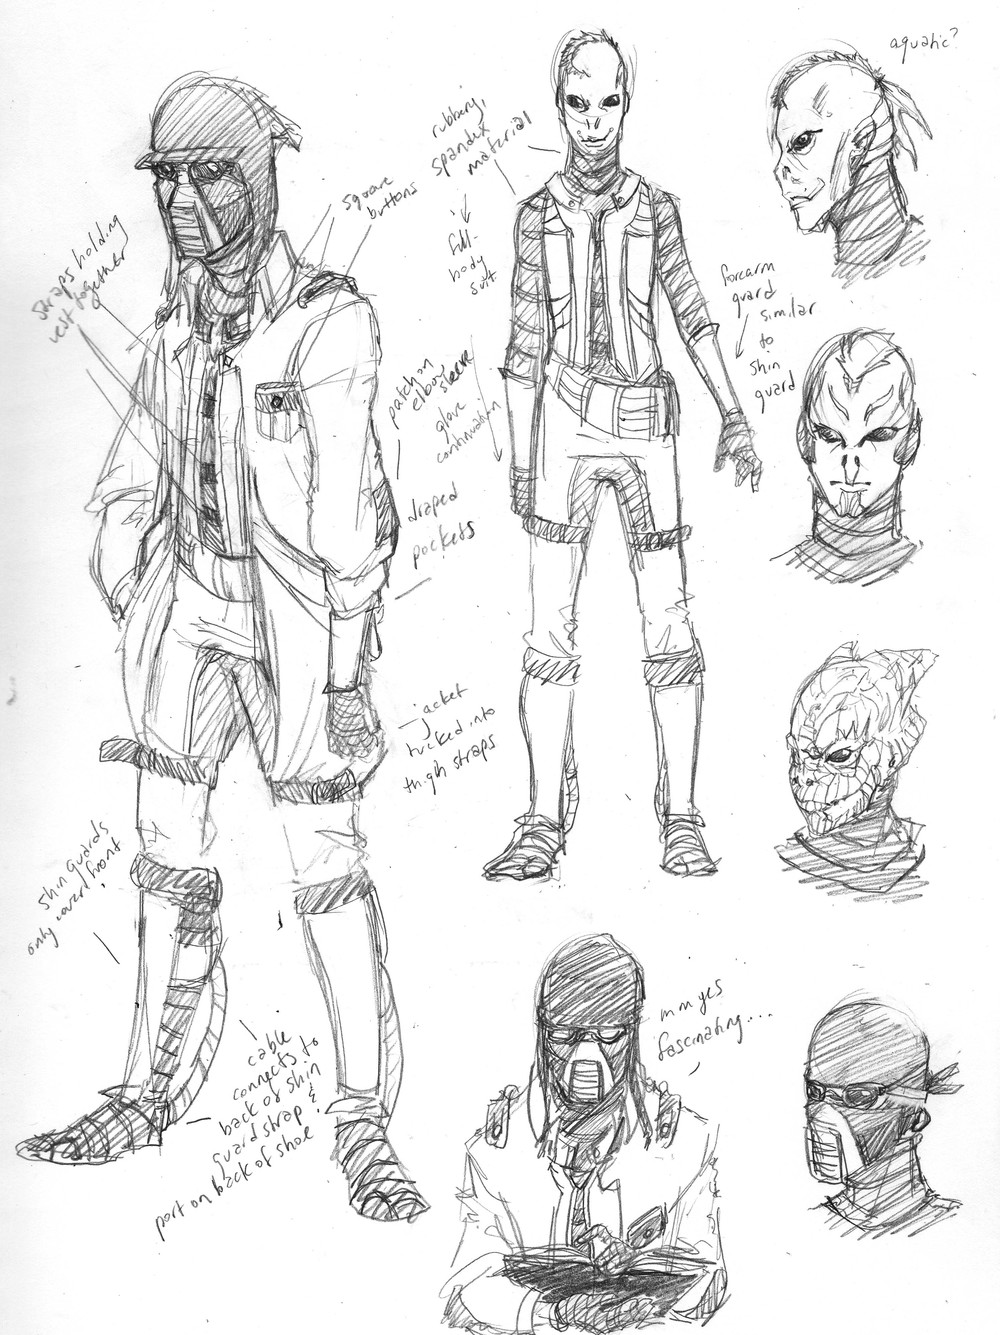 character sheet - rael sketches.jpg